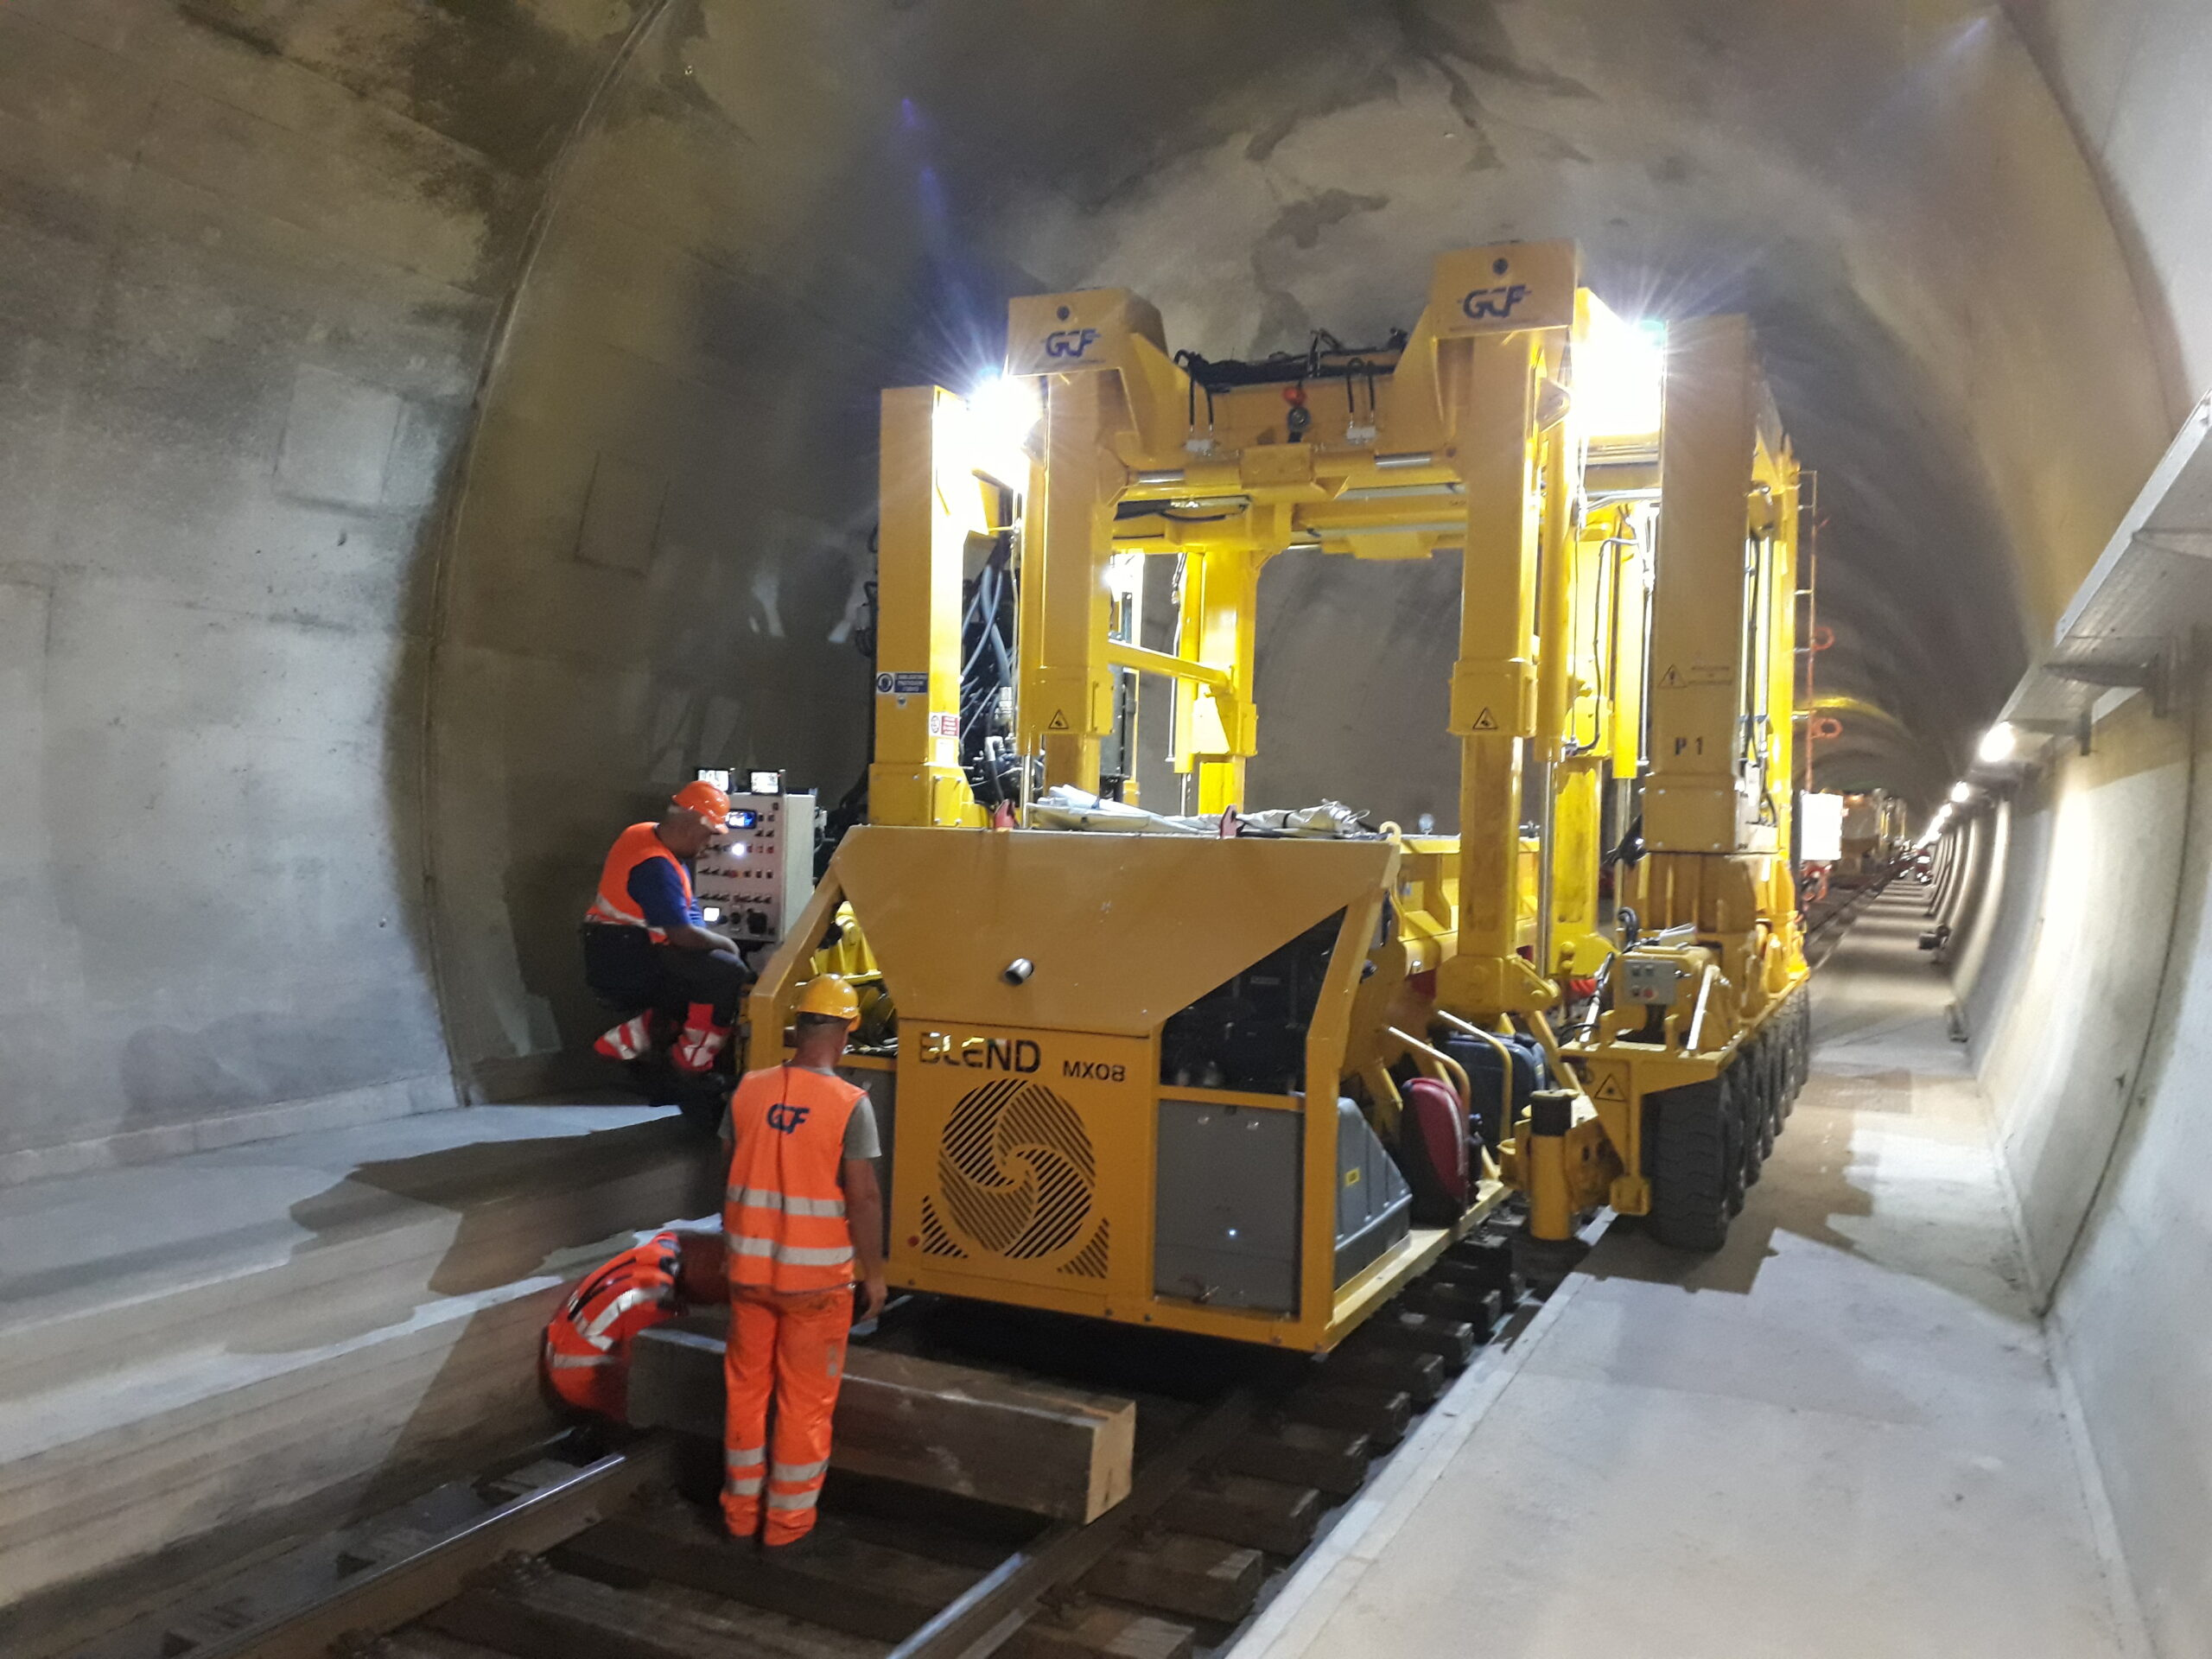 The work in the Monte Ceneri Tunnel